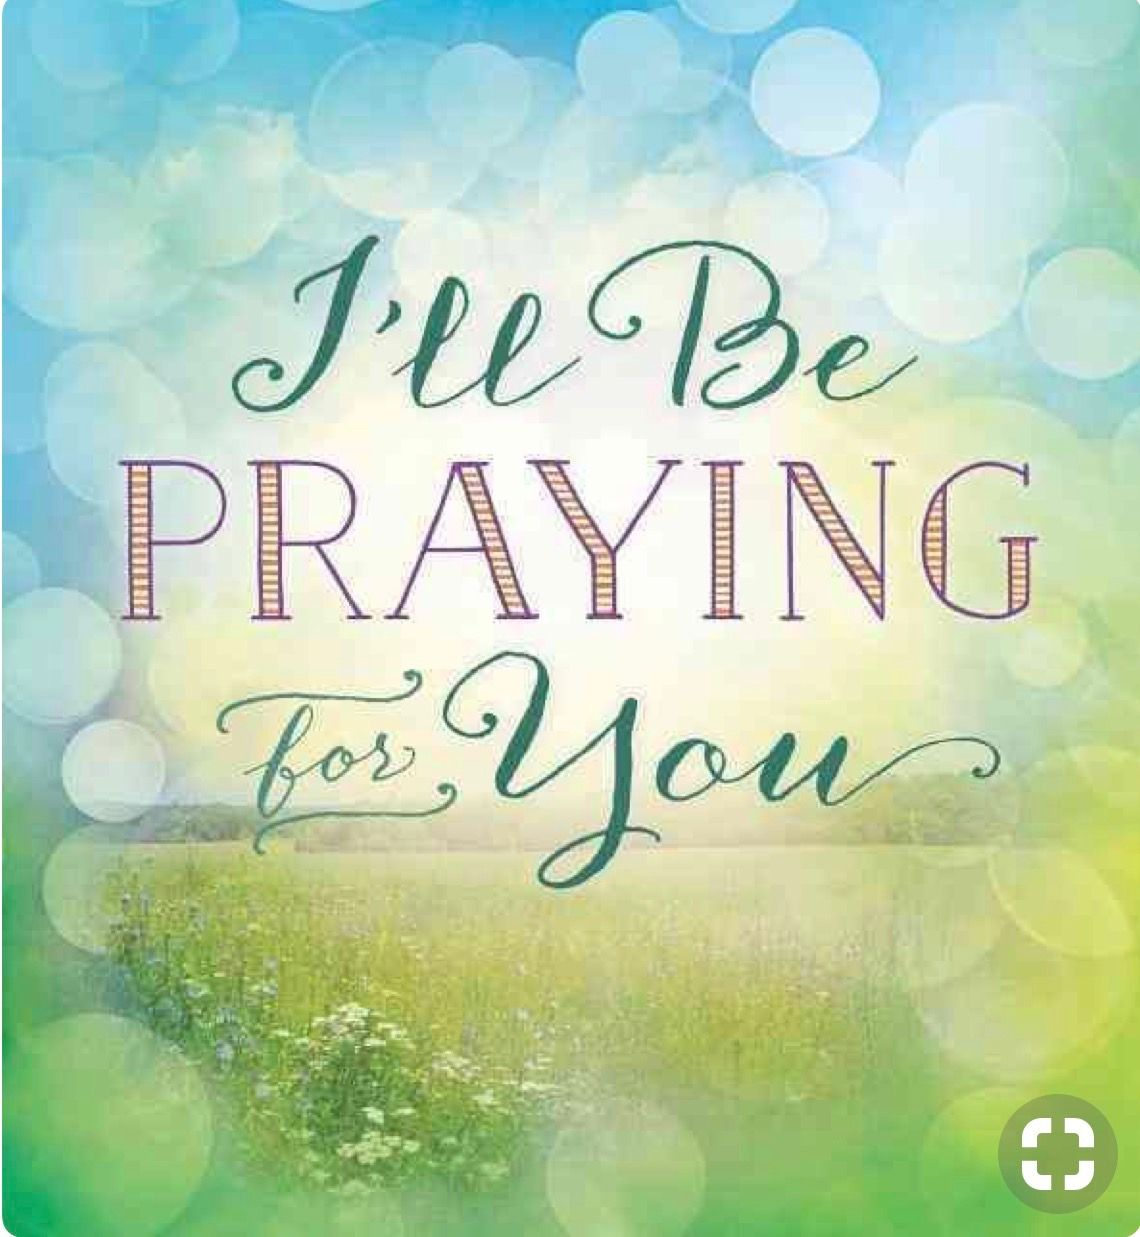 Pin by Deloris Tribe on HB, Thoughts & Prayers | Sending